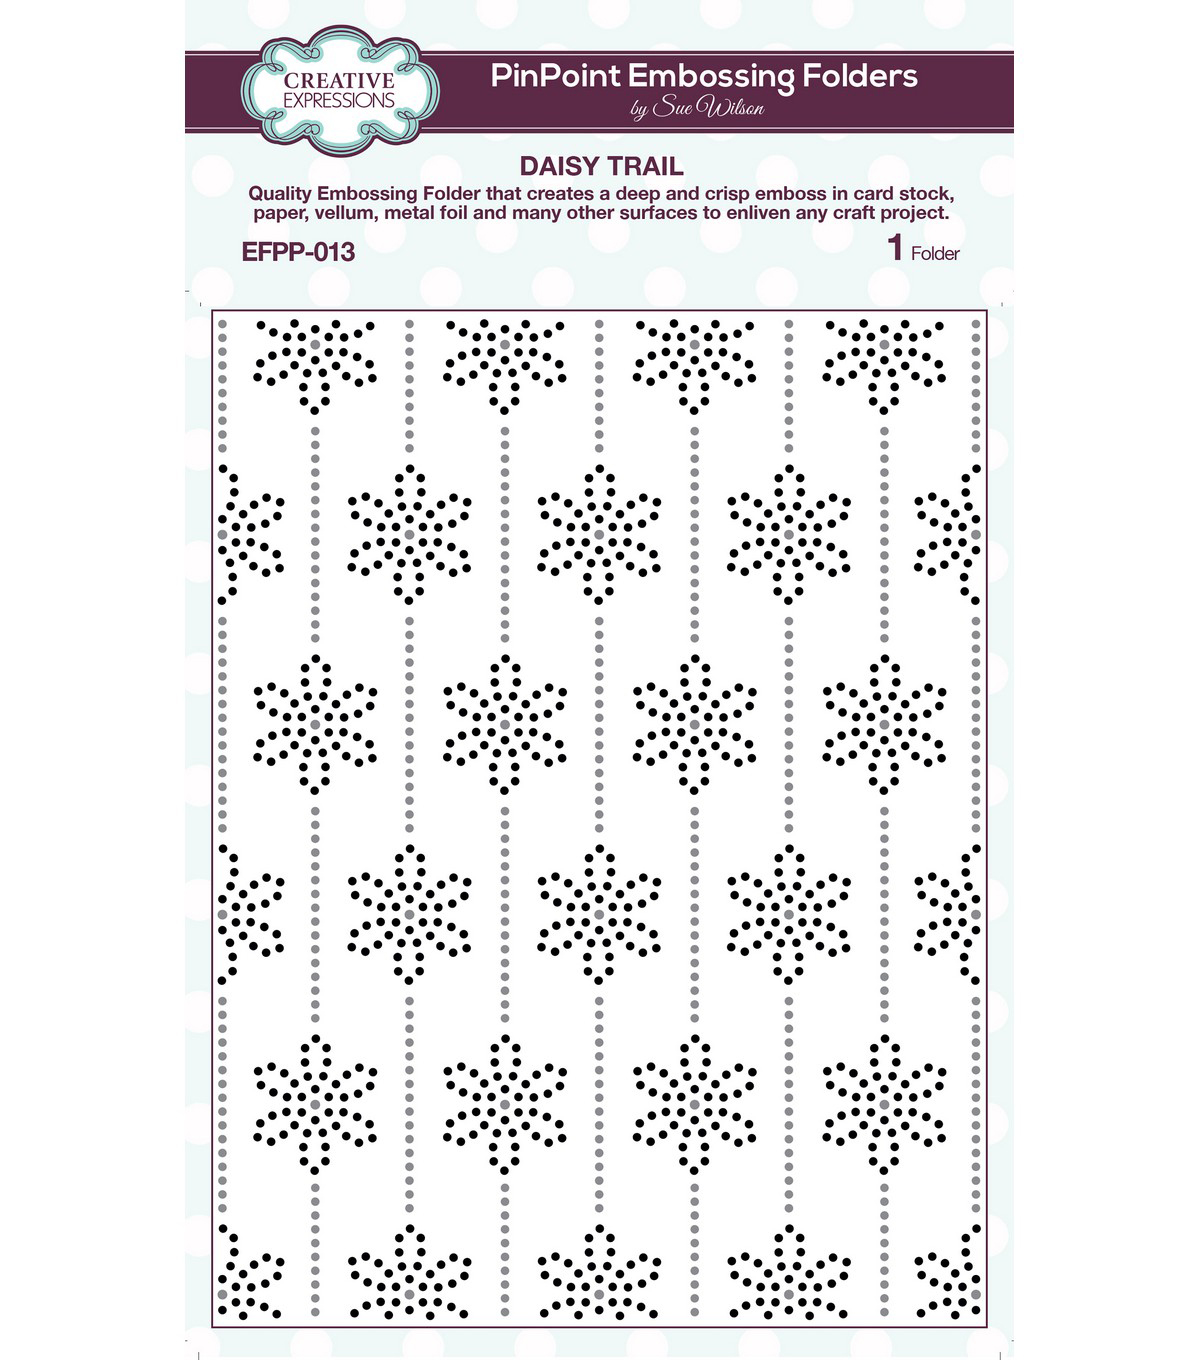 Creative Expressions PinPoint Embossing Folder 5.75\u0022x7.5\u0022-Daisy Trail